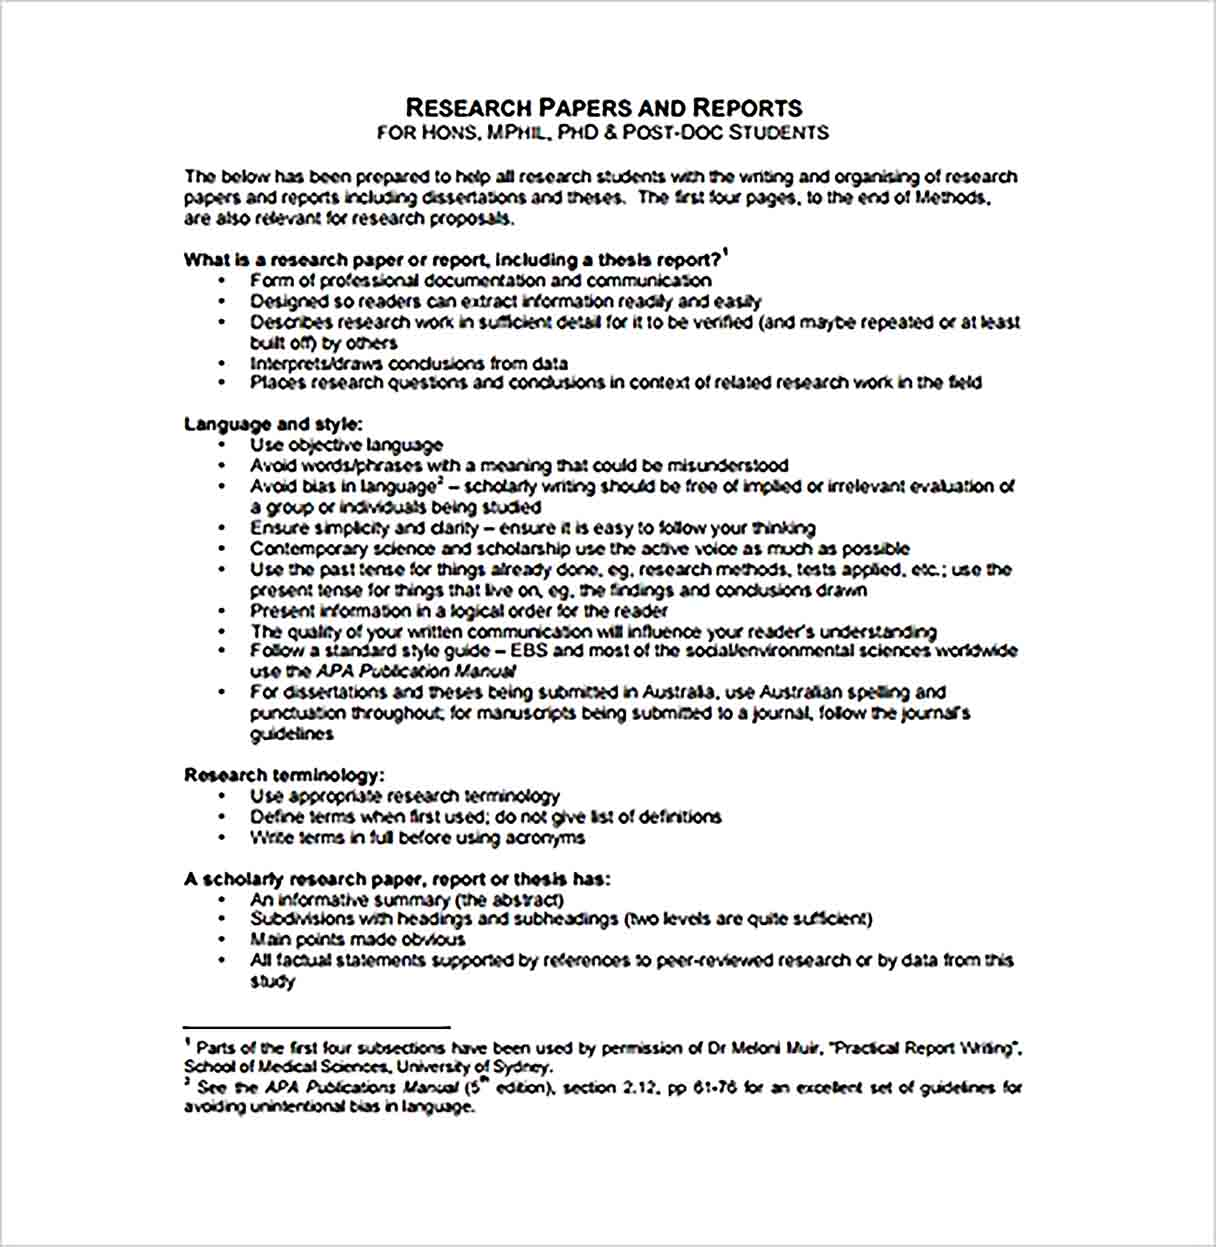 Research Paper Outline Template Sample   room surf.com